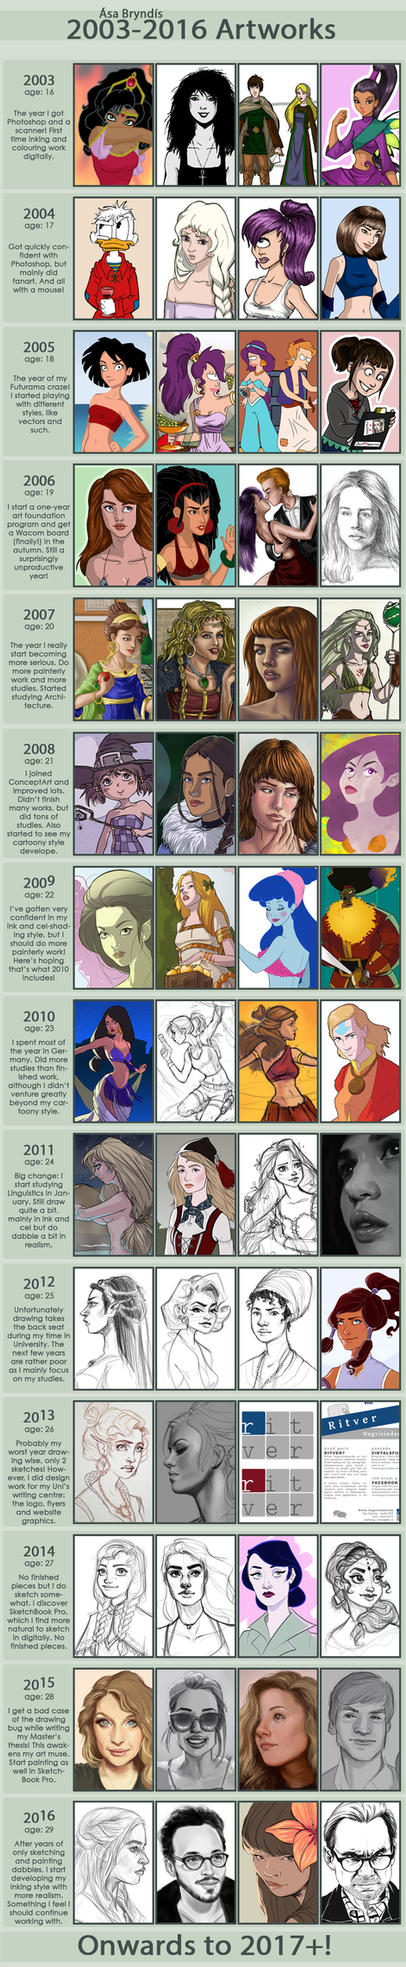 Art Improvement '03-'16 Meme by asa-bryndis